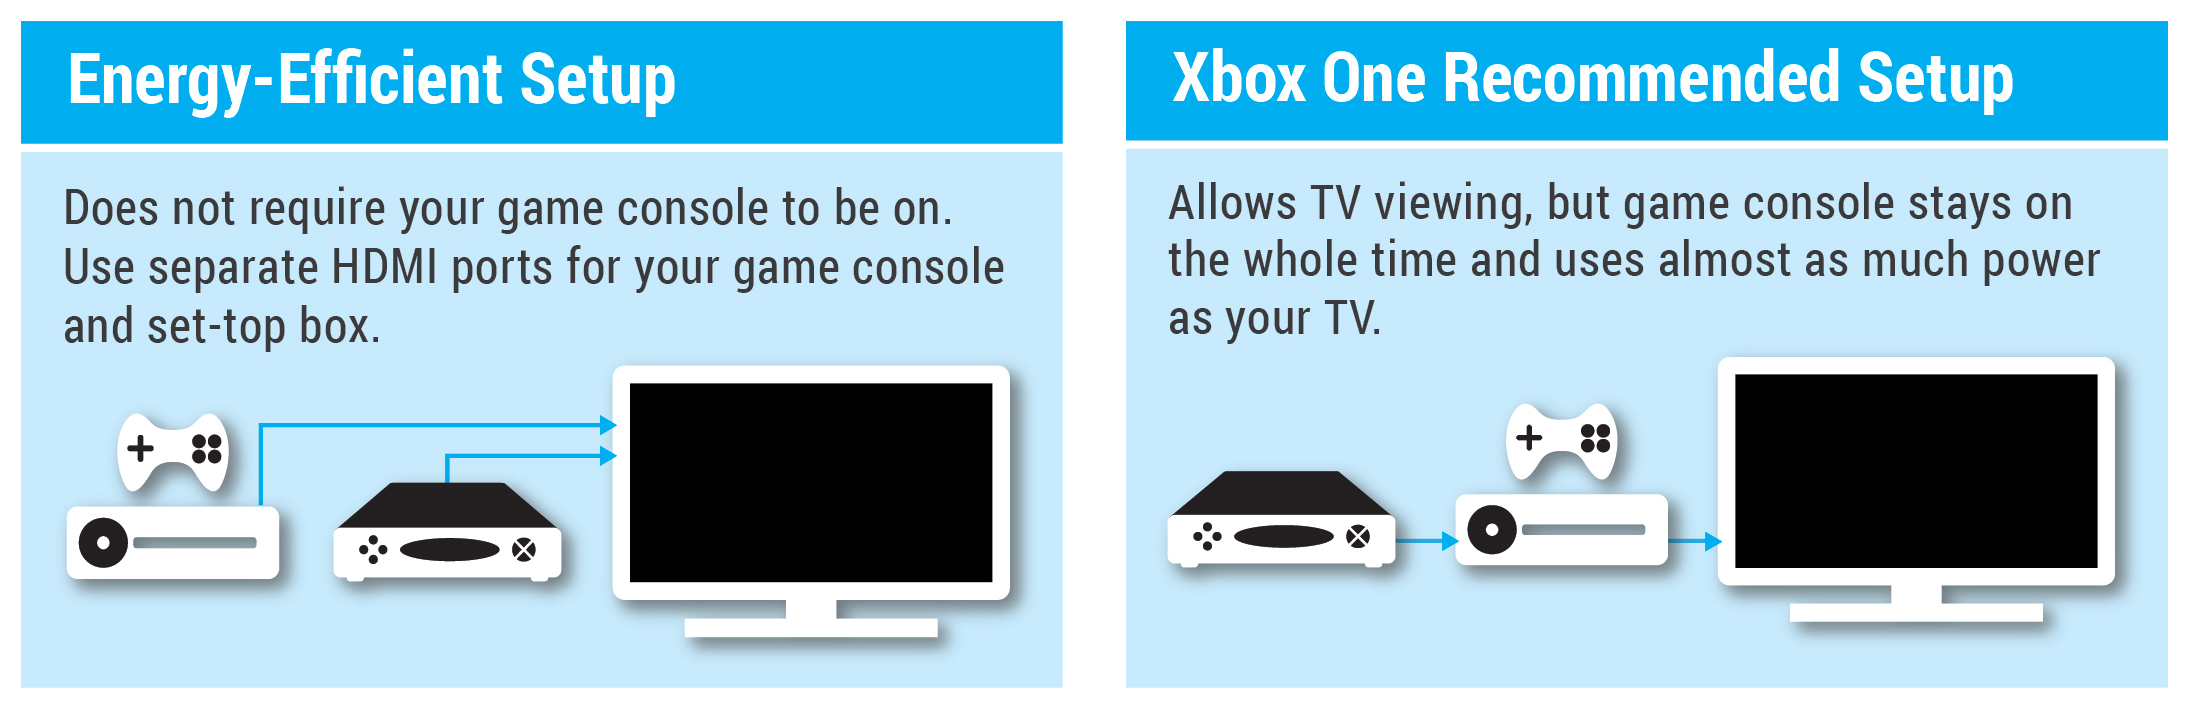 Xbox HDMI Streaming